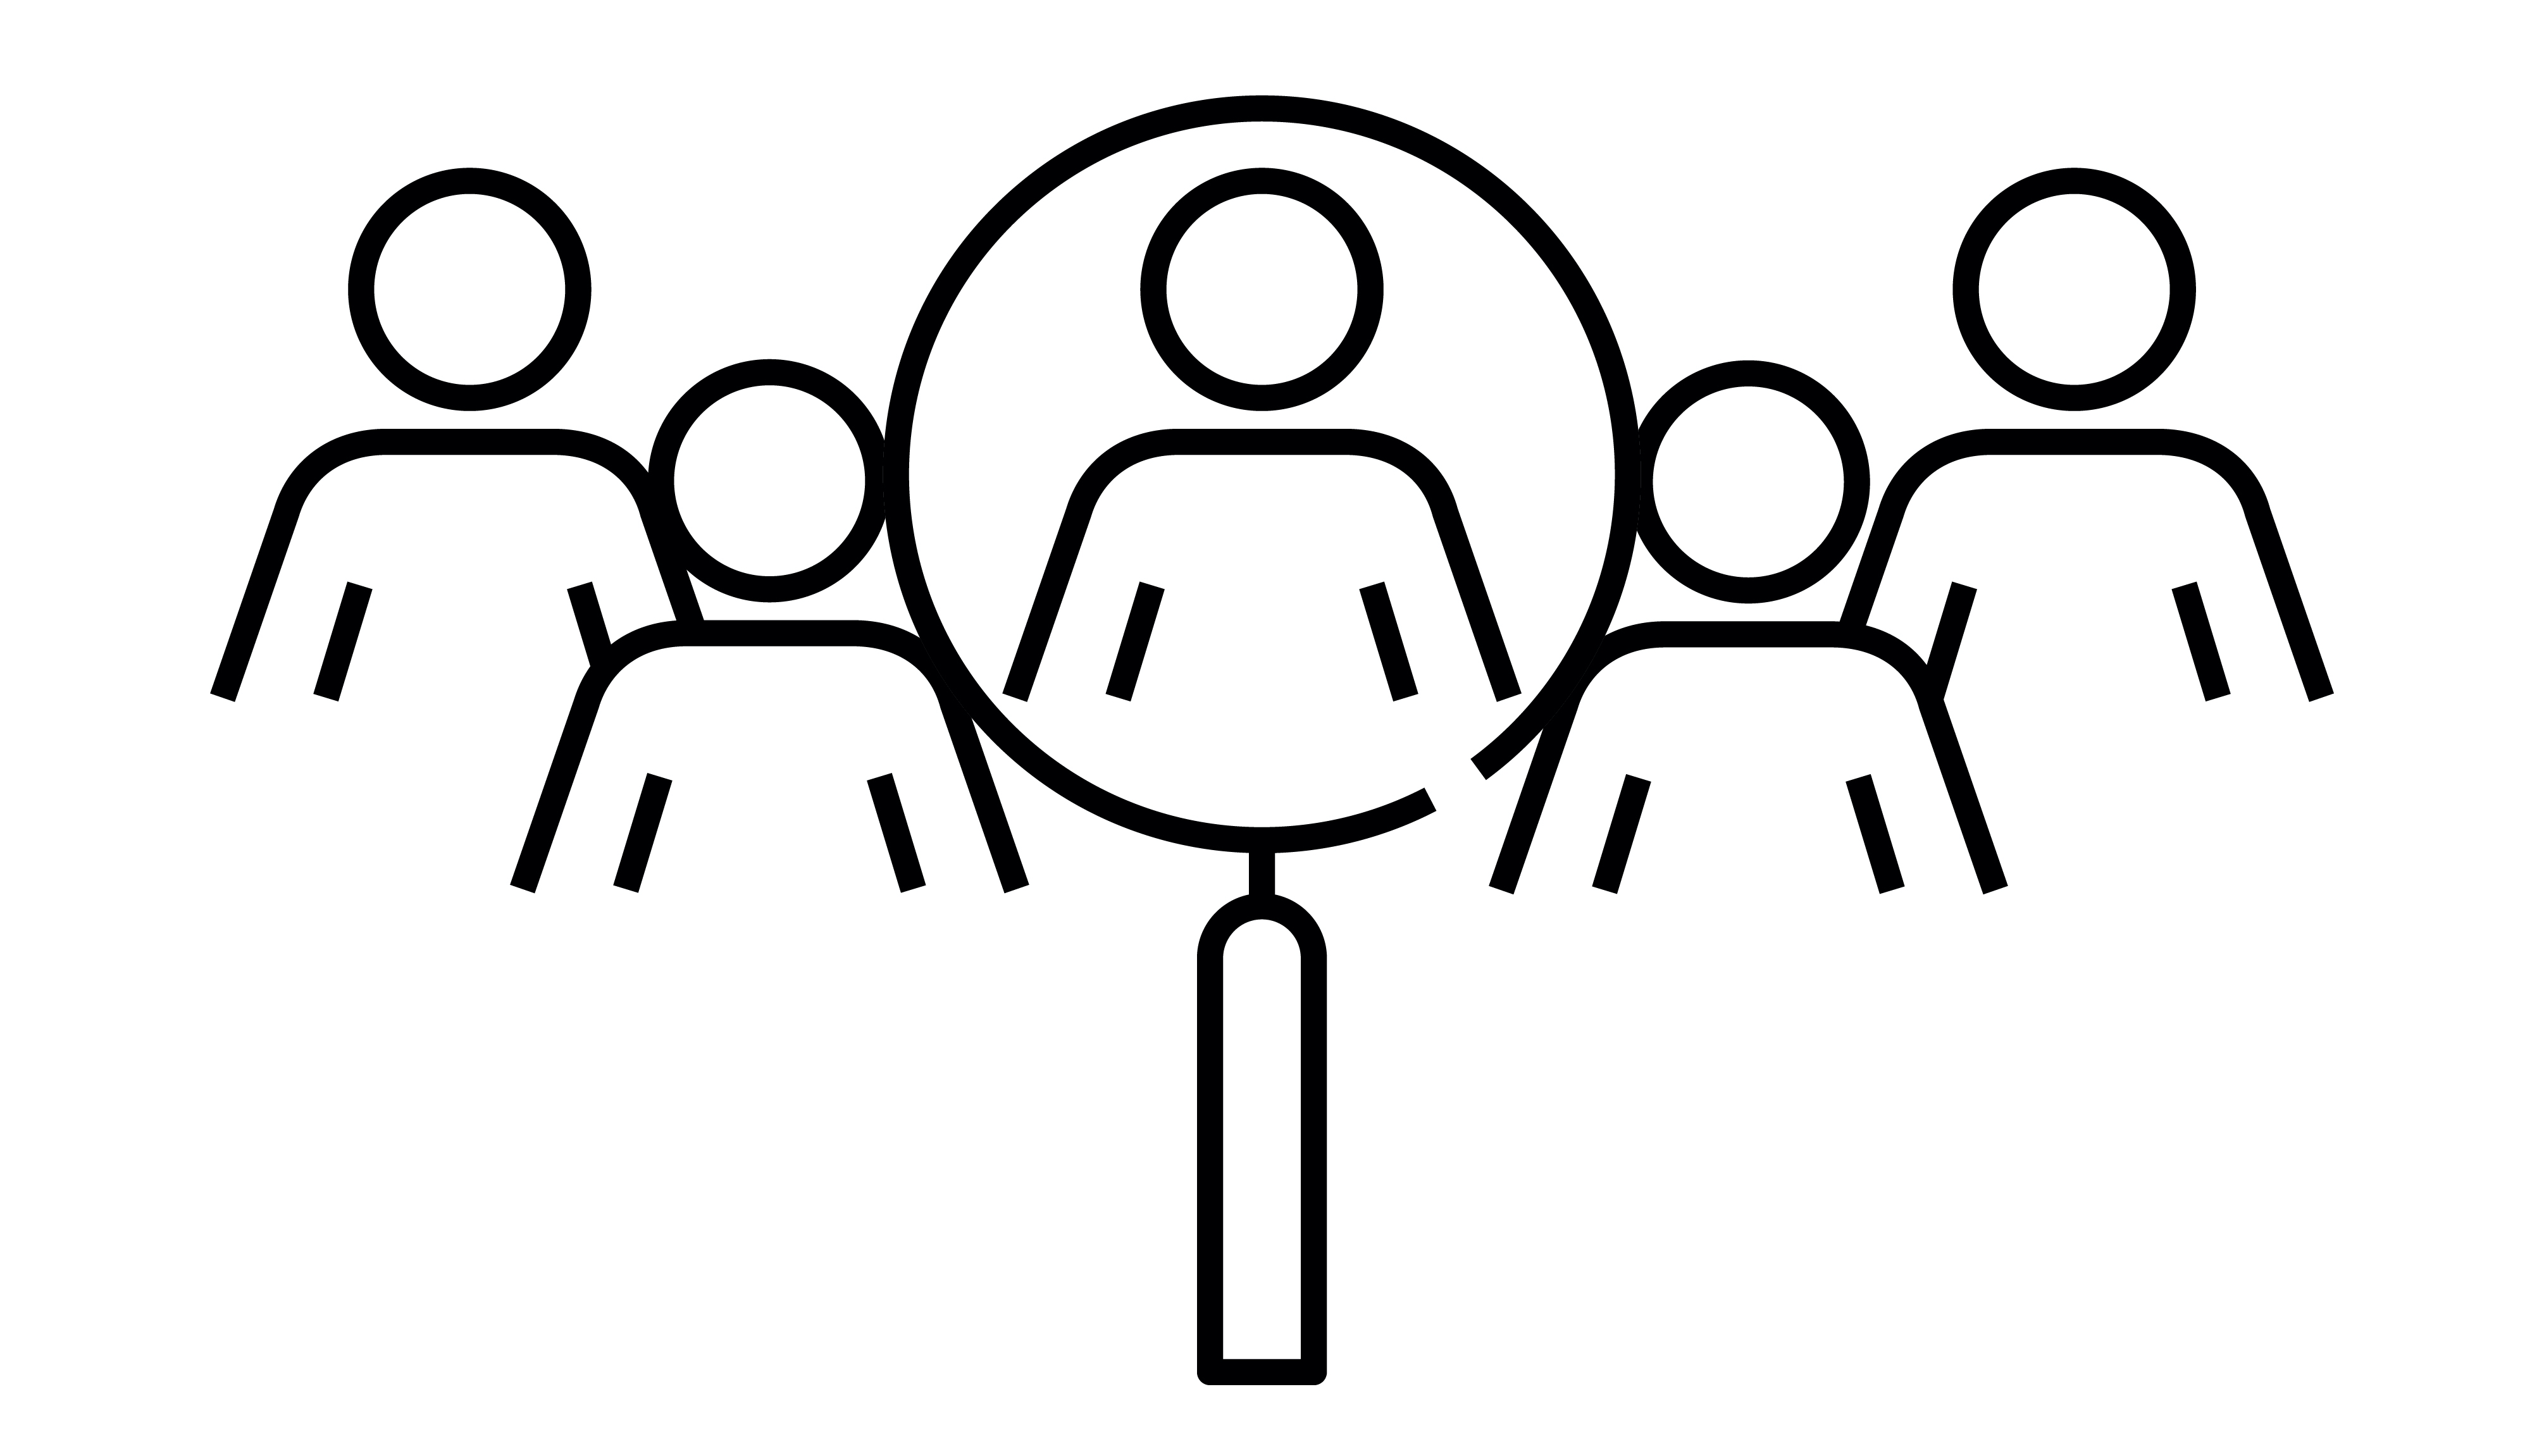 Audience and Magnifying Glass Illustration